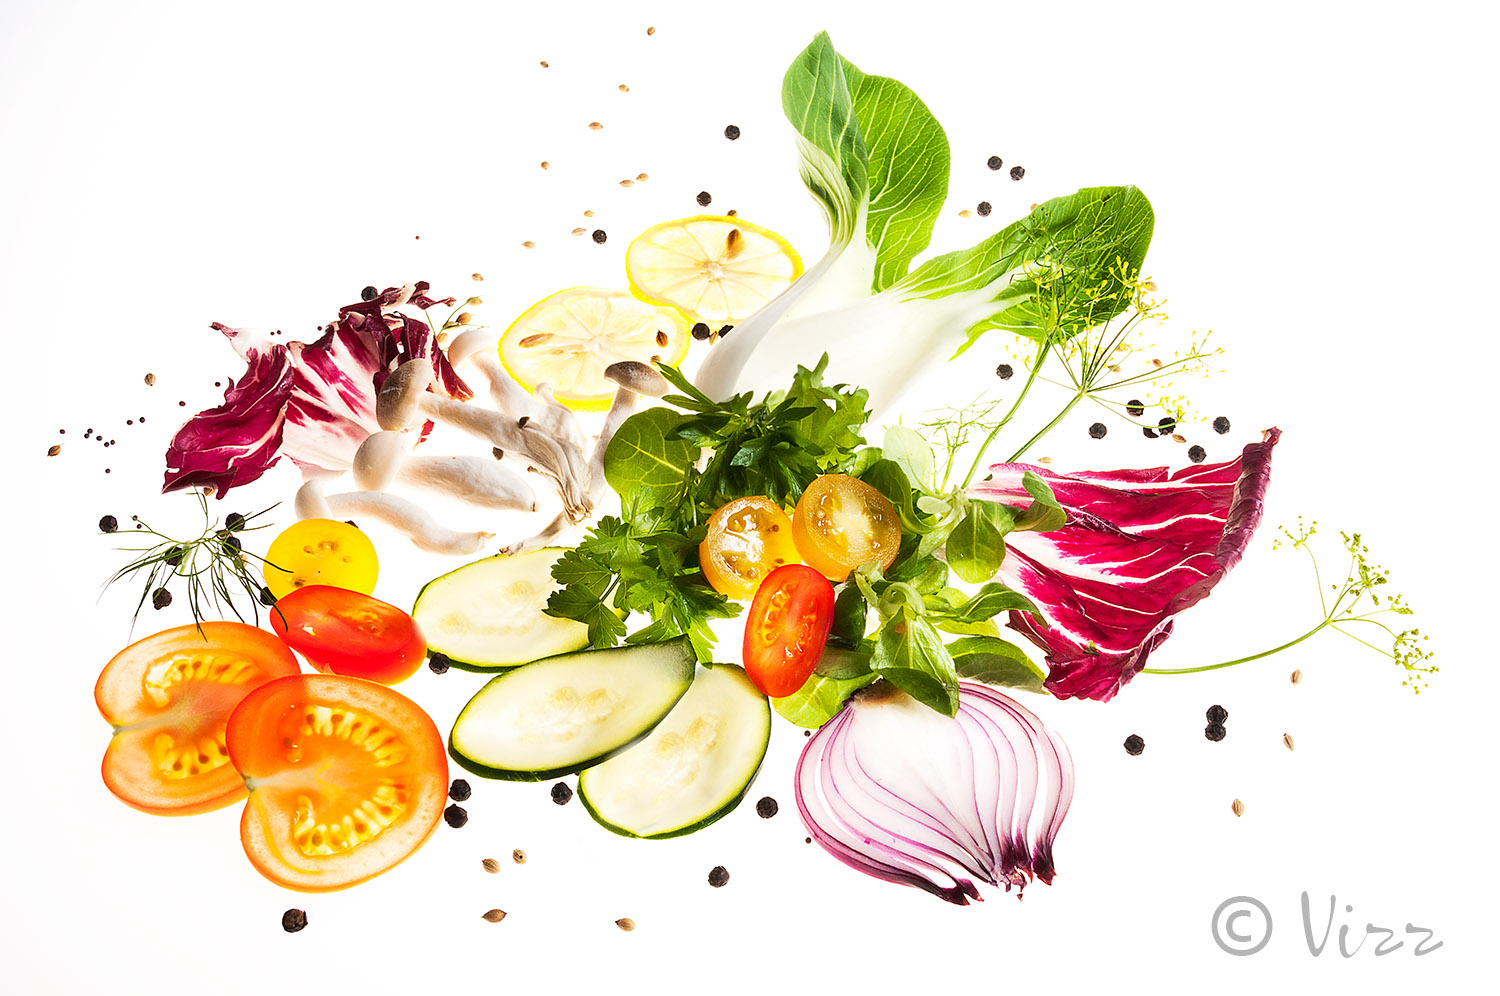 vegetables-11Oct-0719-Edit.jpg